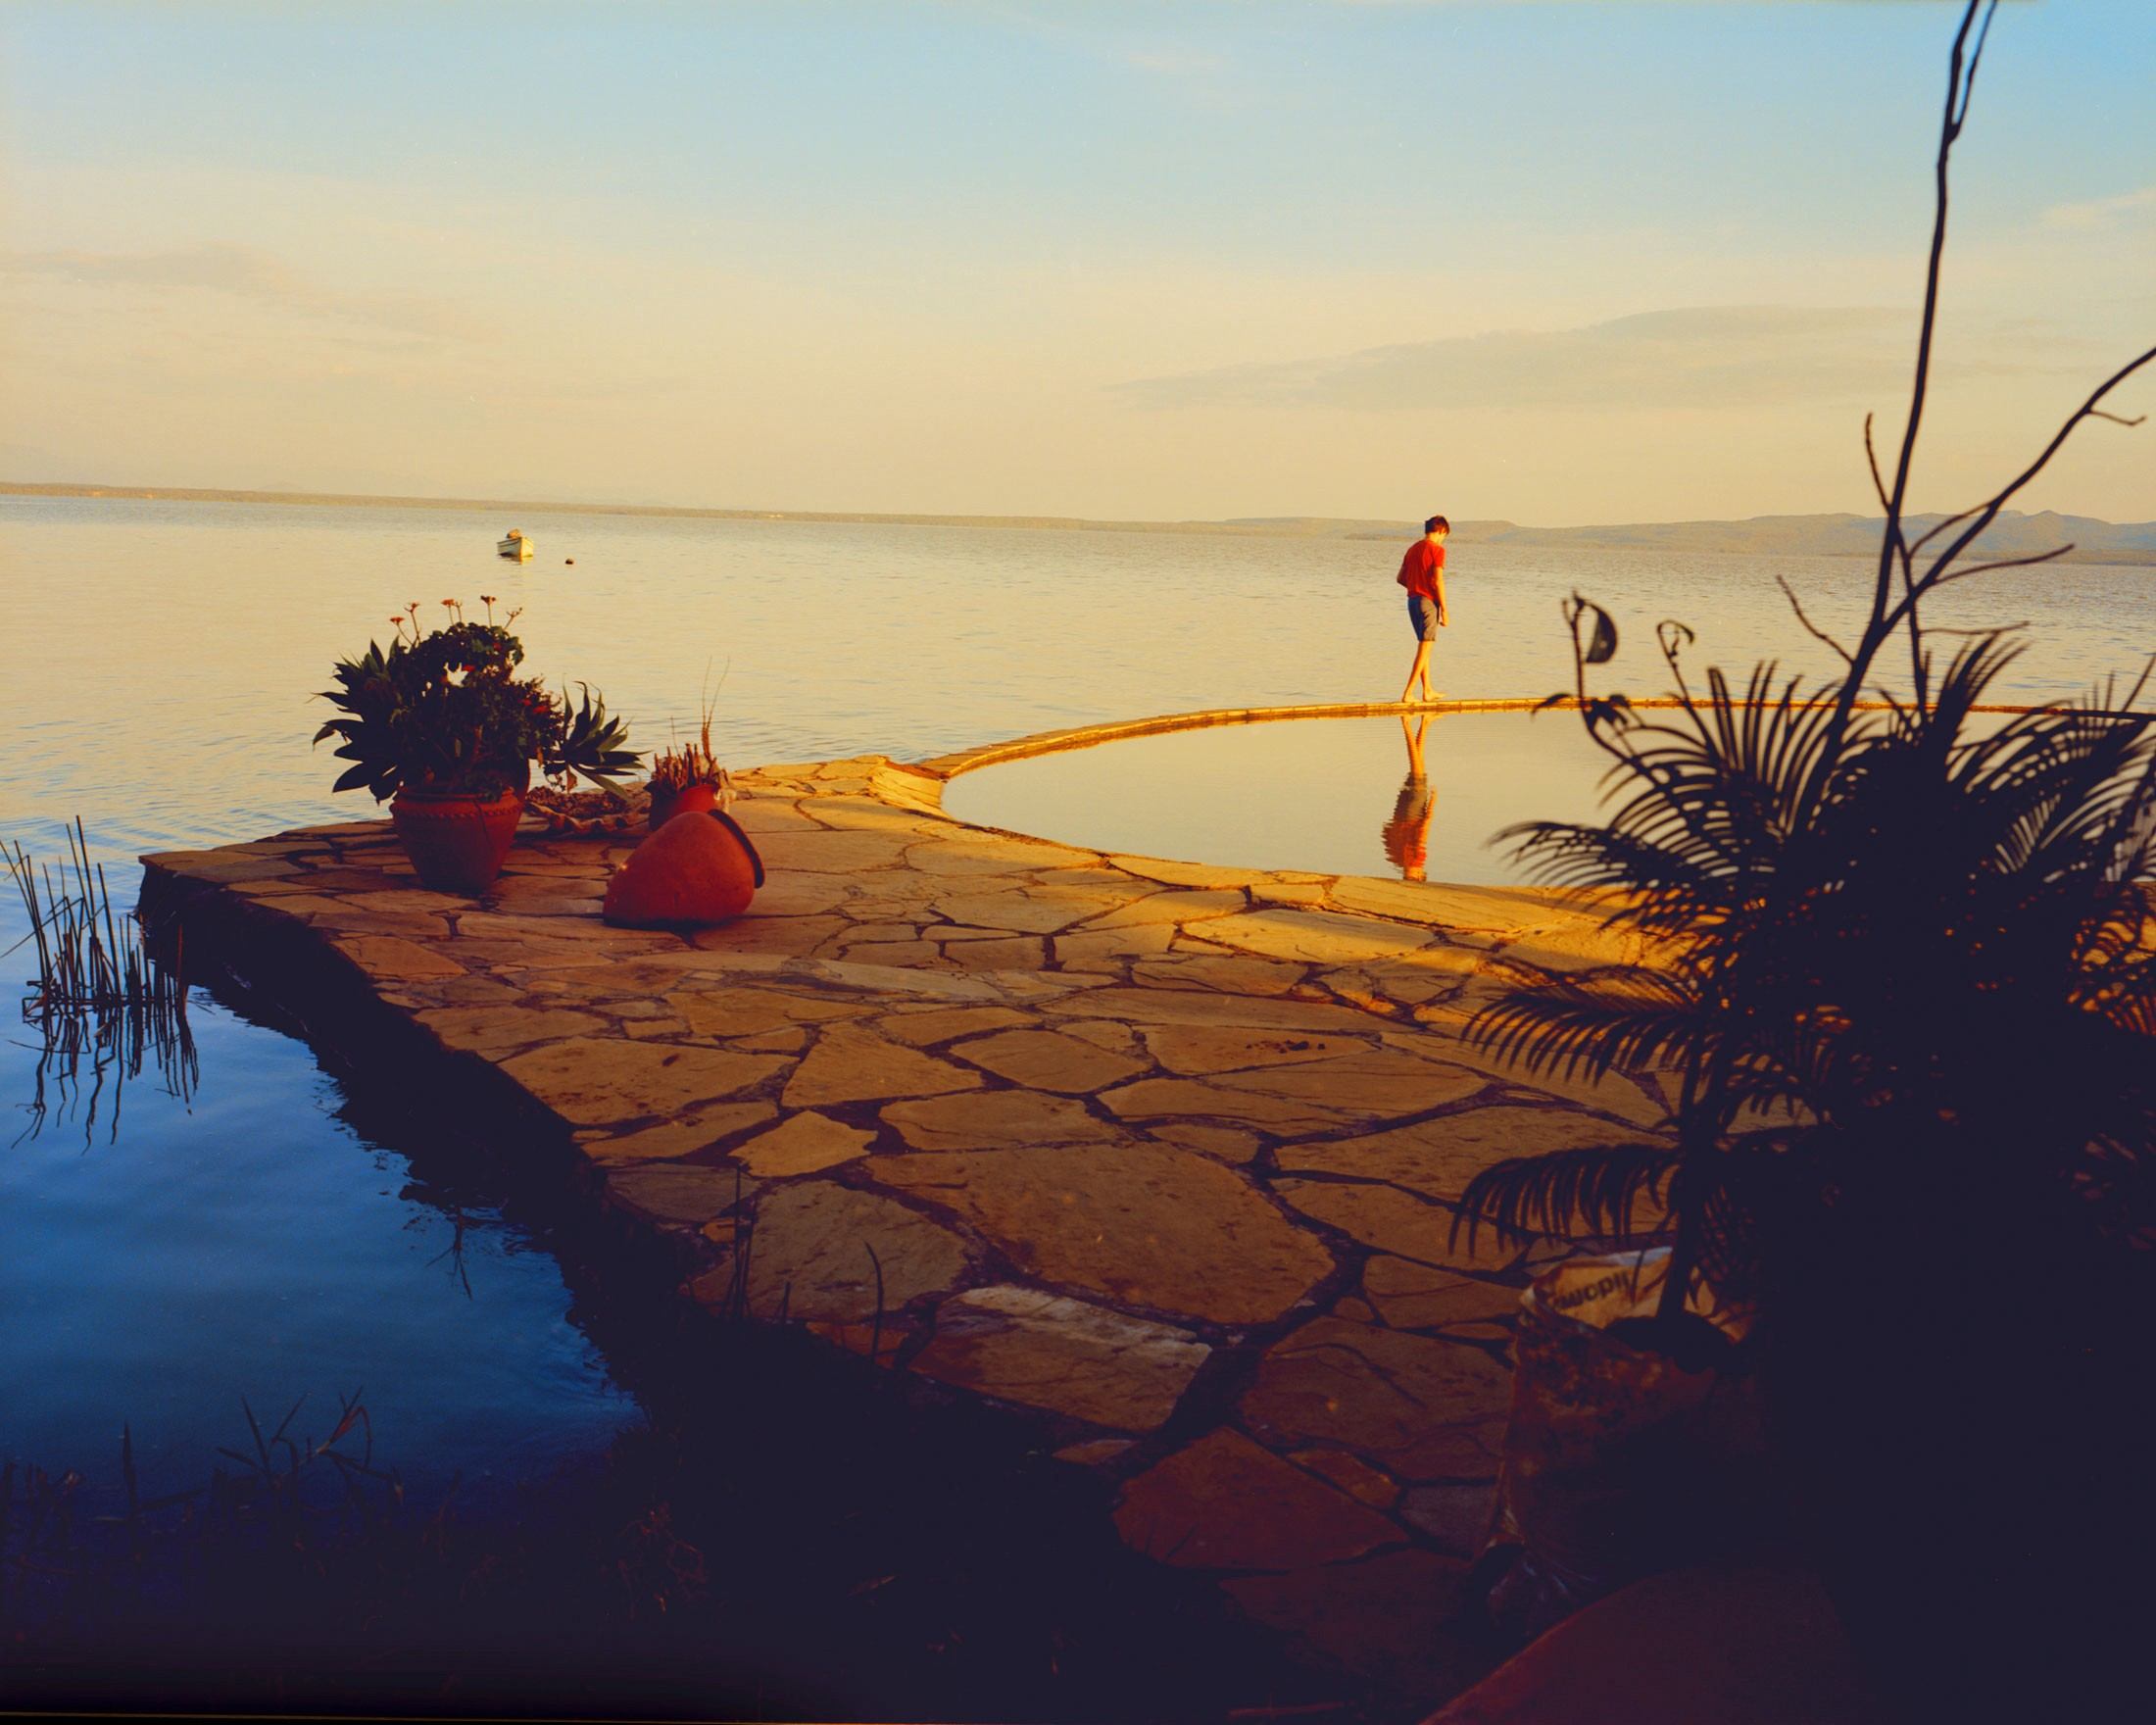 A person walks along the Kenyan island at sunset, with the lake in the background.